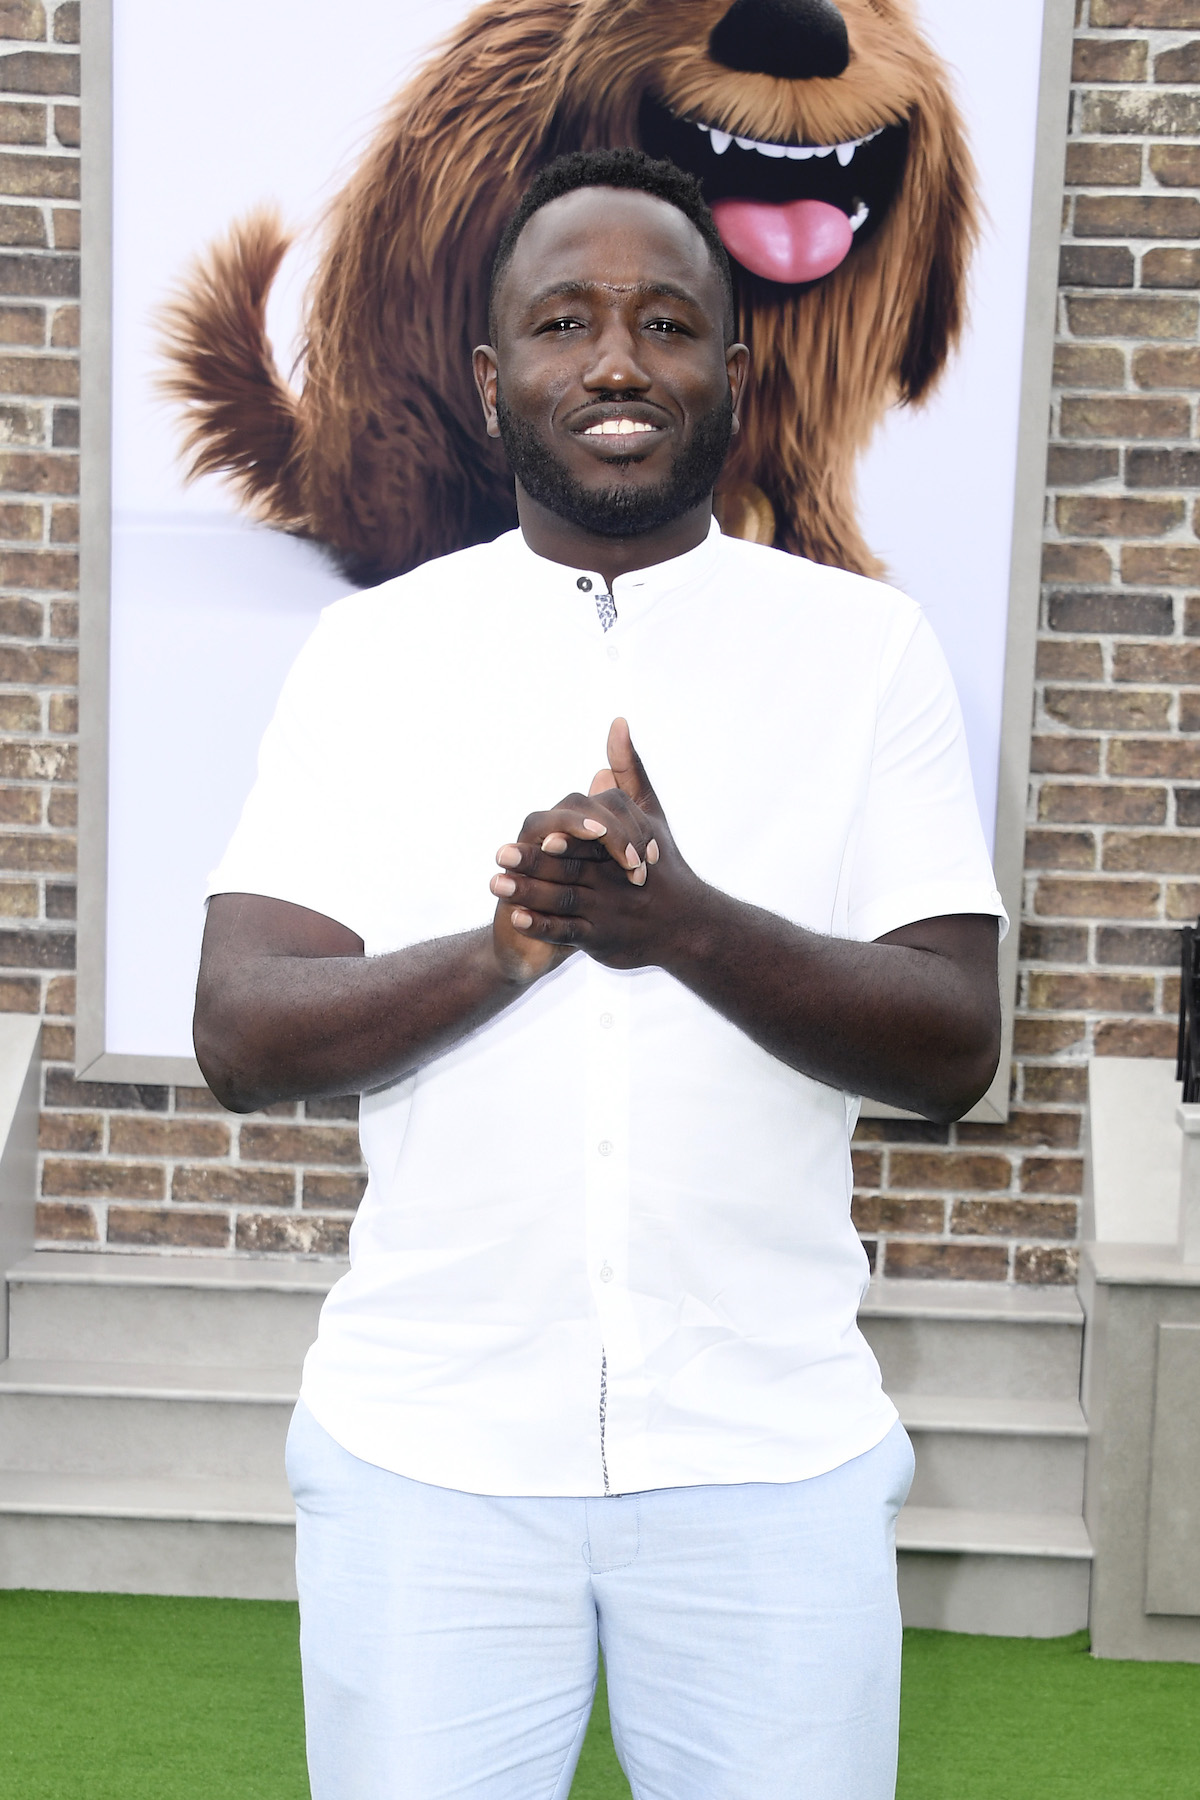 Hannibal Buress attends the Premiere of Universal Pictures' 'The Secret Life Of Pets 2' at Regency Village Theatre on June 02, 2019 in Westwood, California. (Photo by Frazer Harrison/Getty Images)